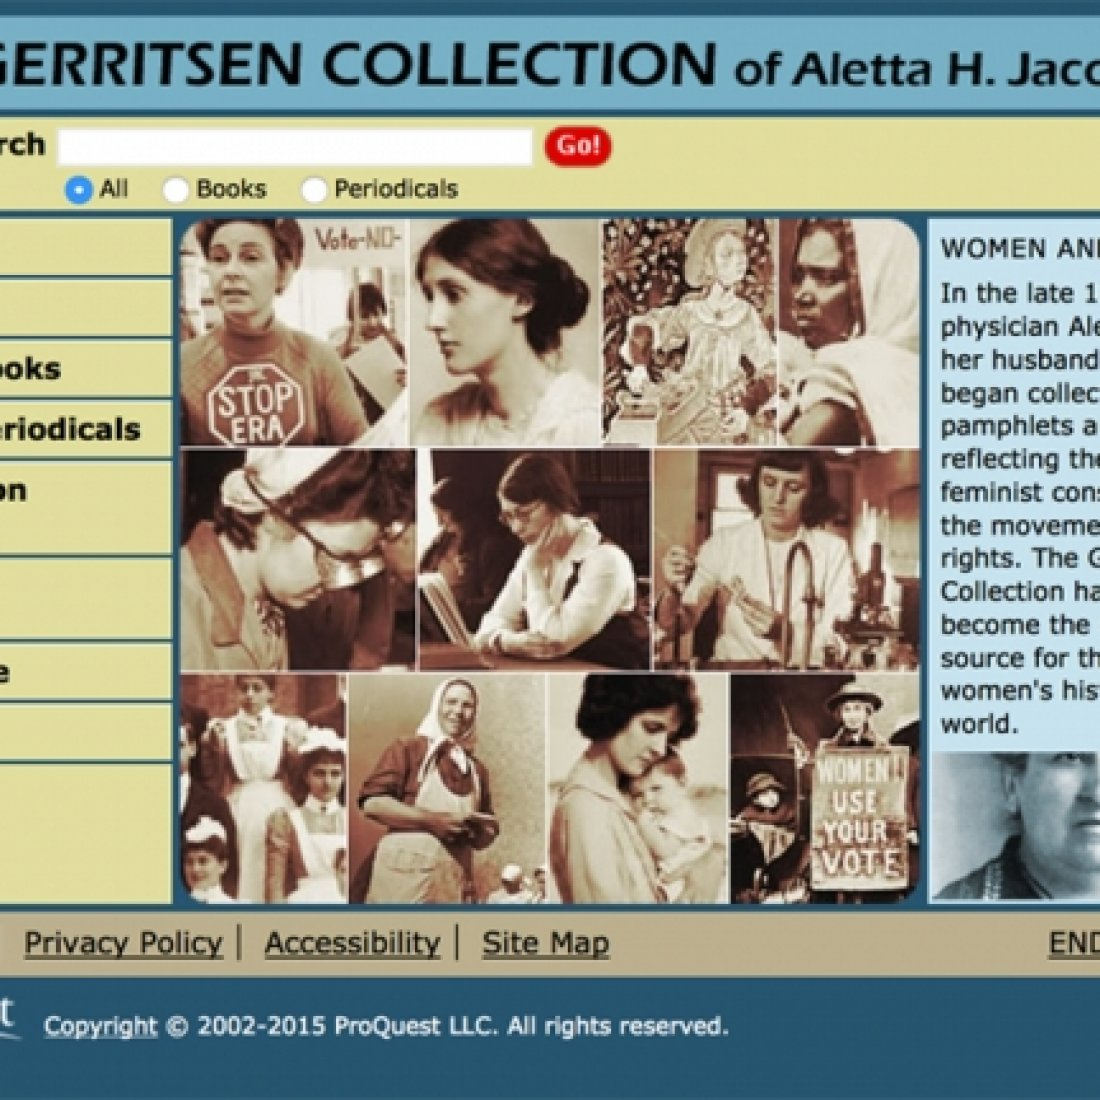 The Gerritsen Collection in Atria 2008